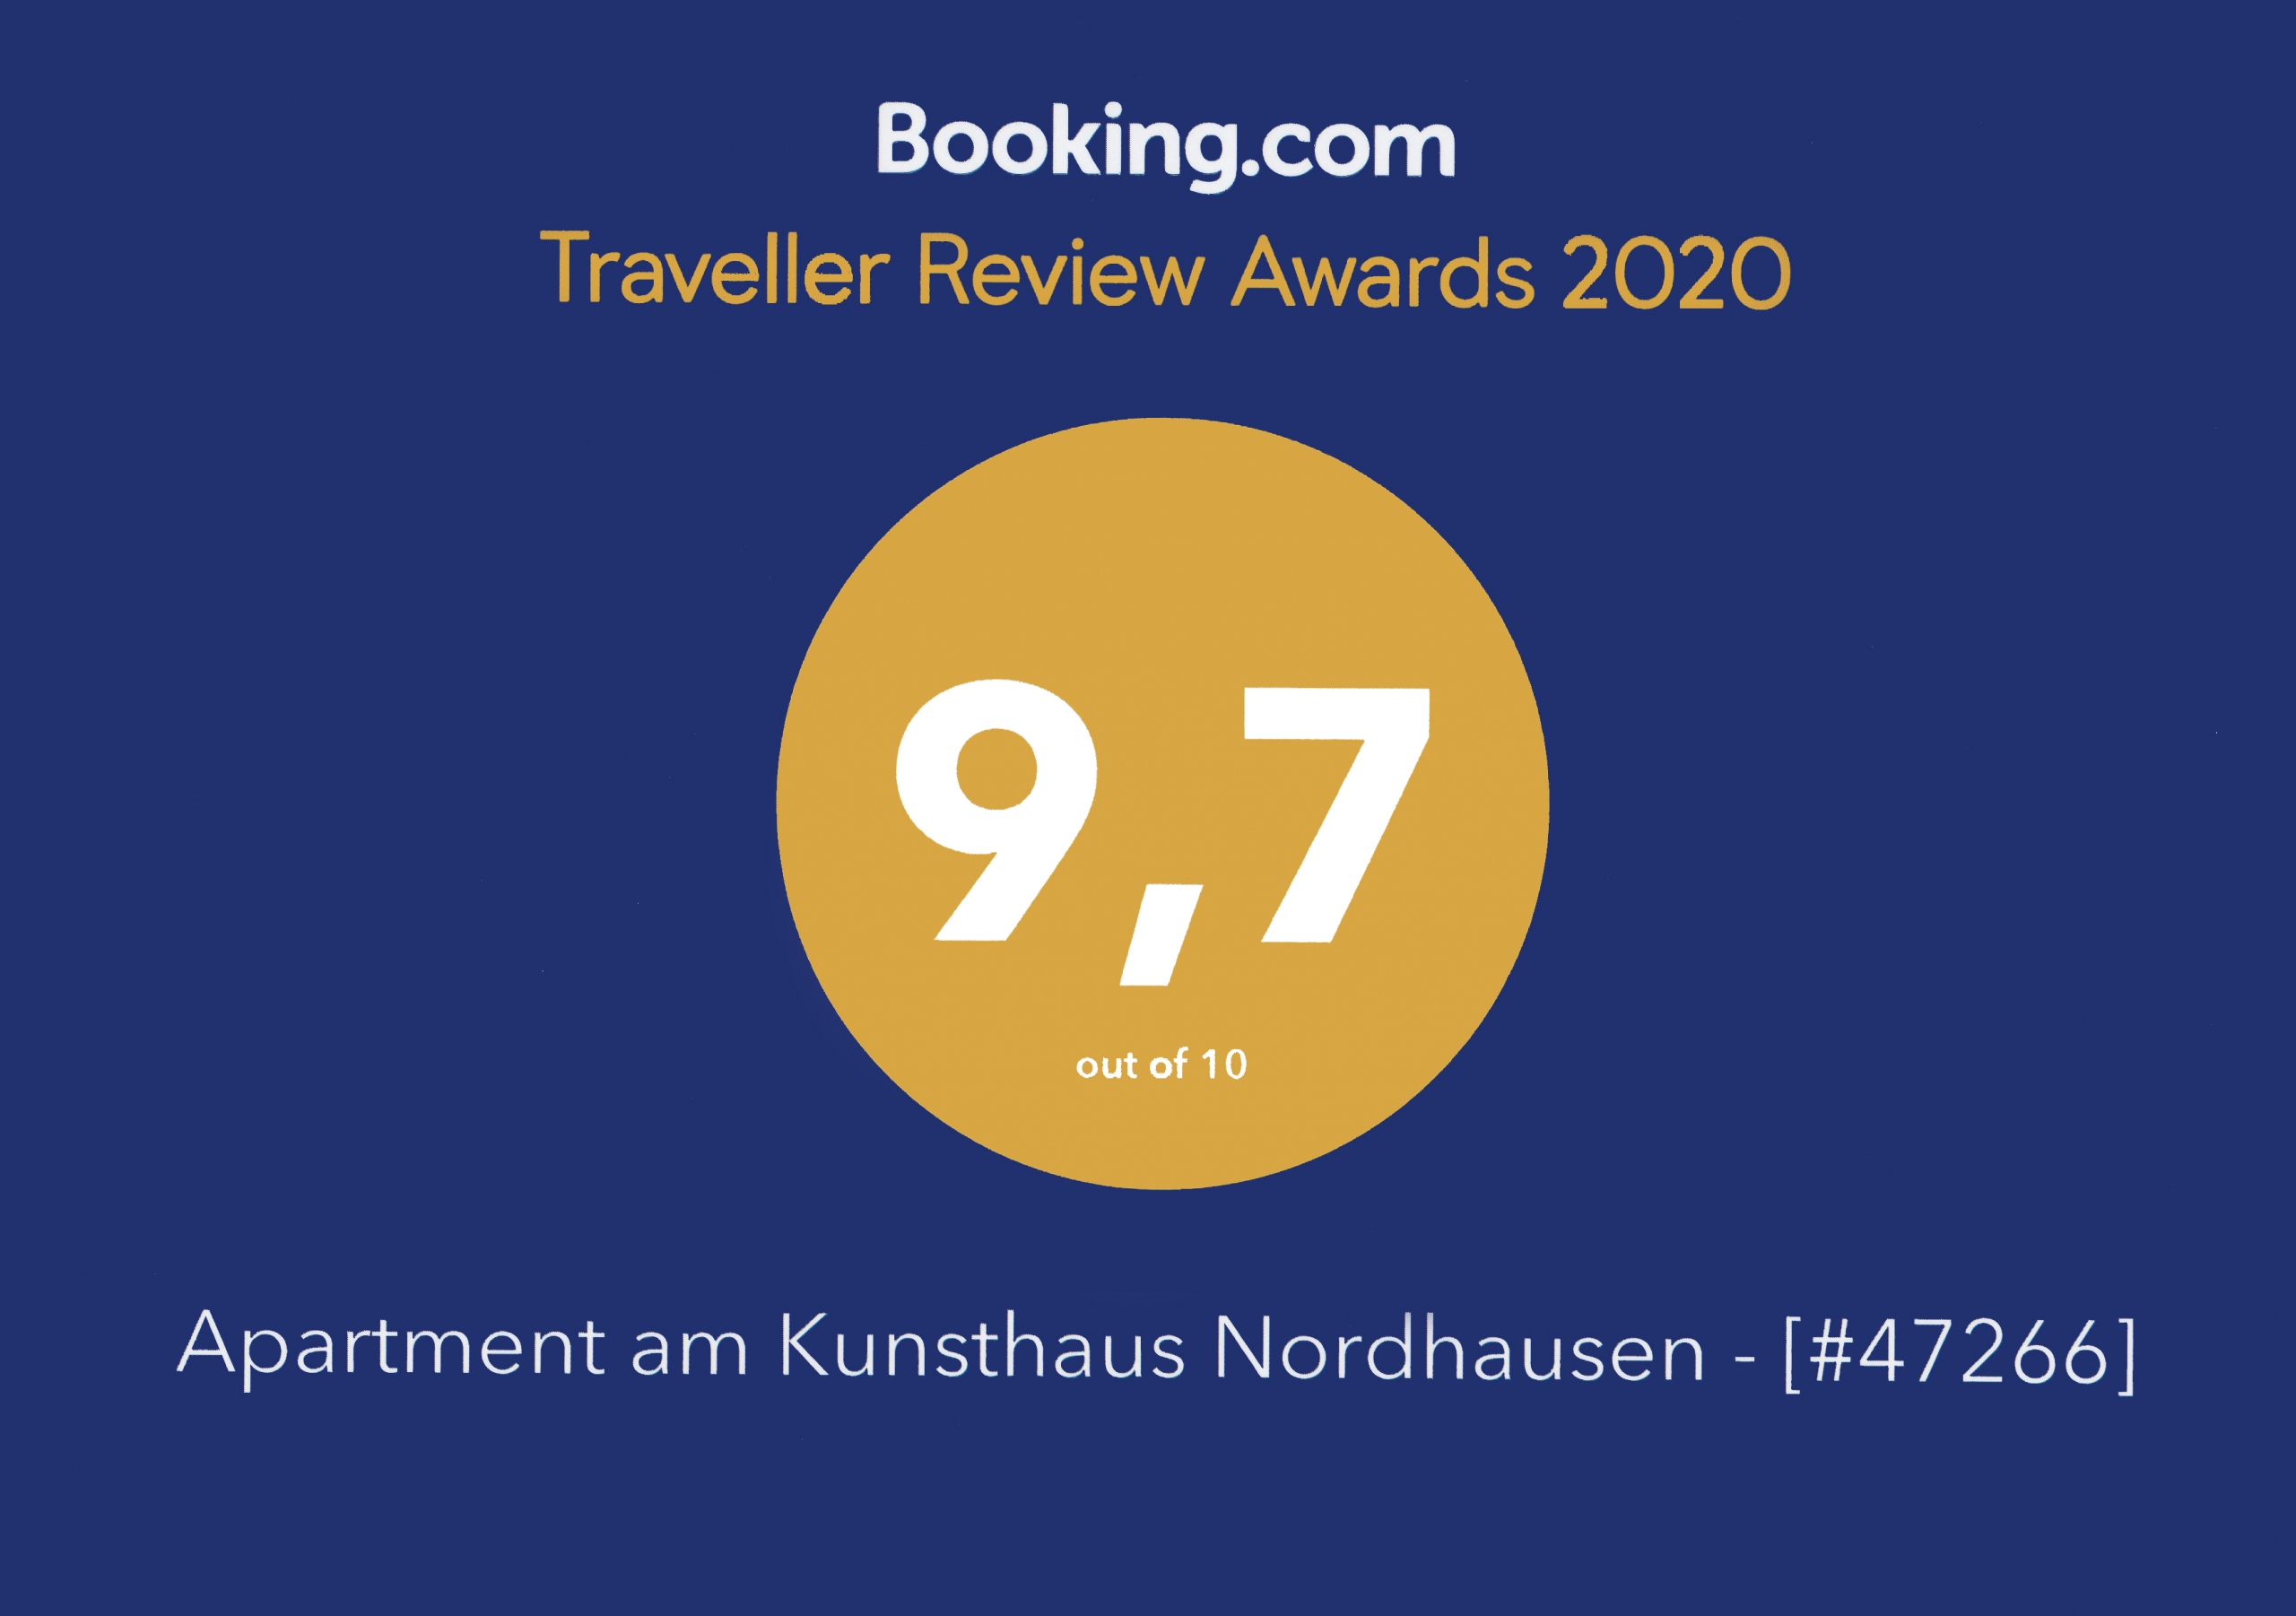 Booking.com Award - Ferienwohnung & Apartment Kunsthaus Nordhausen